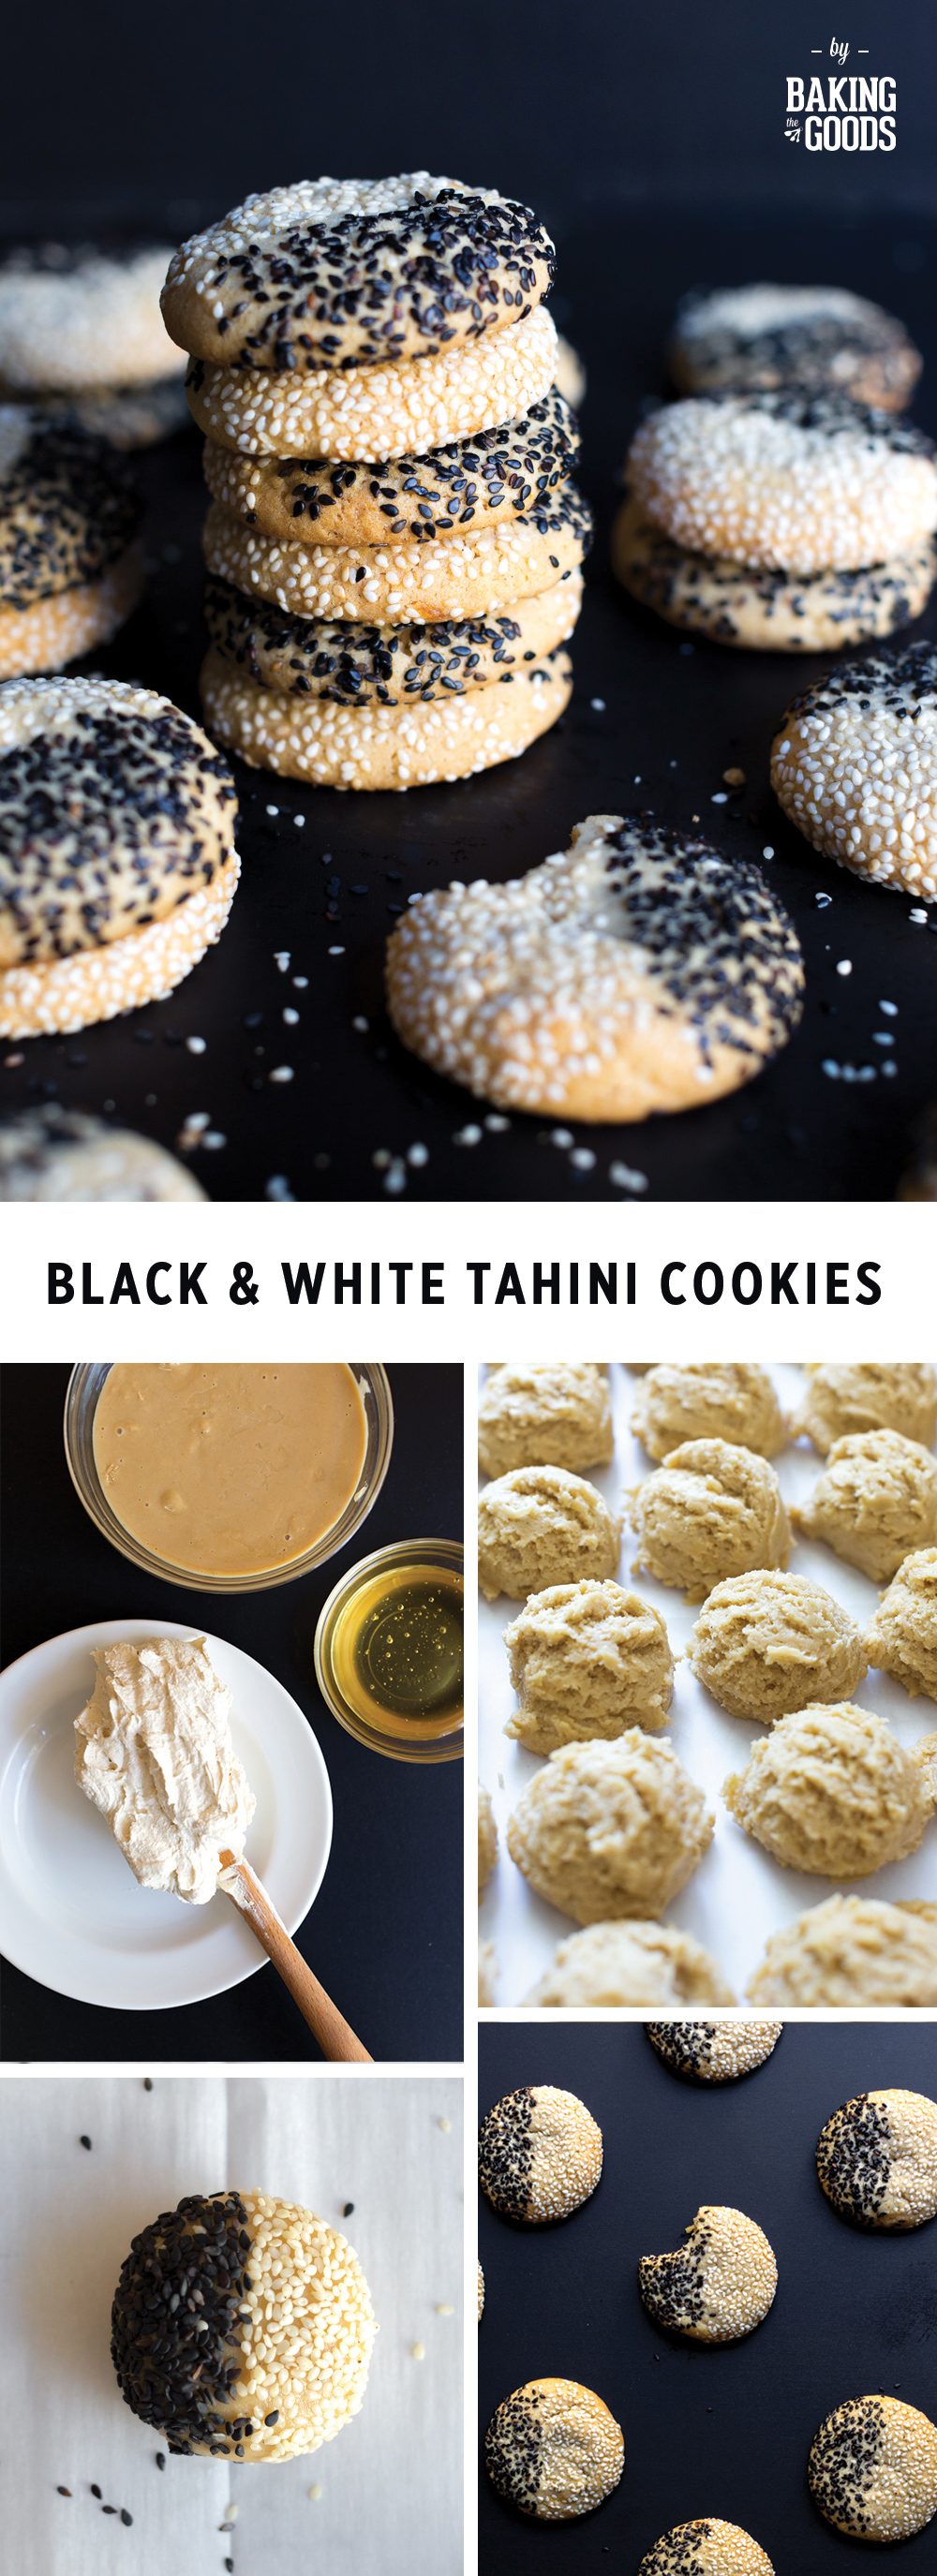 Black & White Tahini Cookies from Baking The Goods